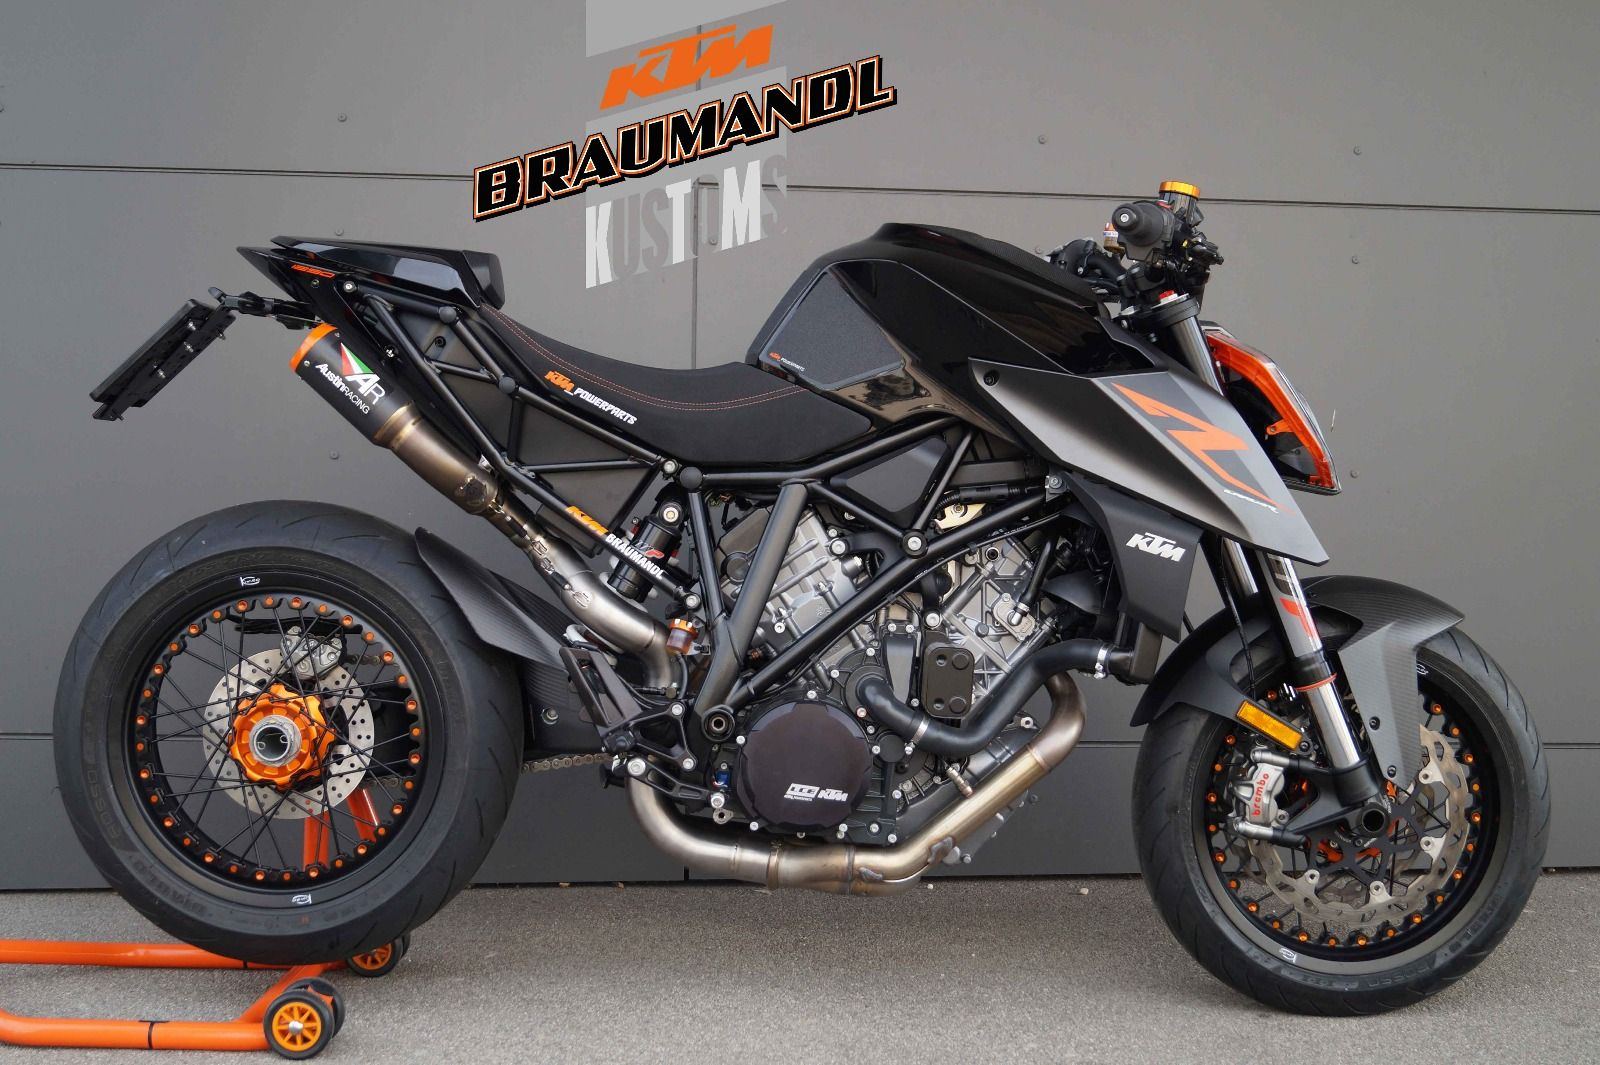 ktm 1290 super duke r ktm braumandl umbau ktm 1290 super. Black Bedroom Furniture Sets. Home Design Ideas